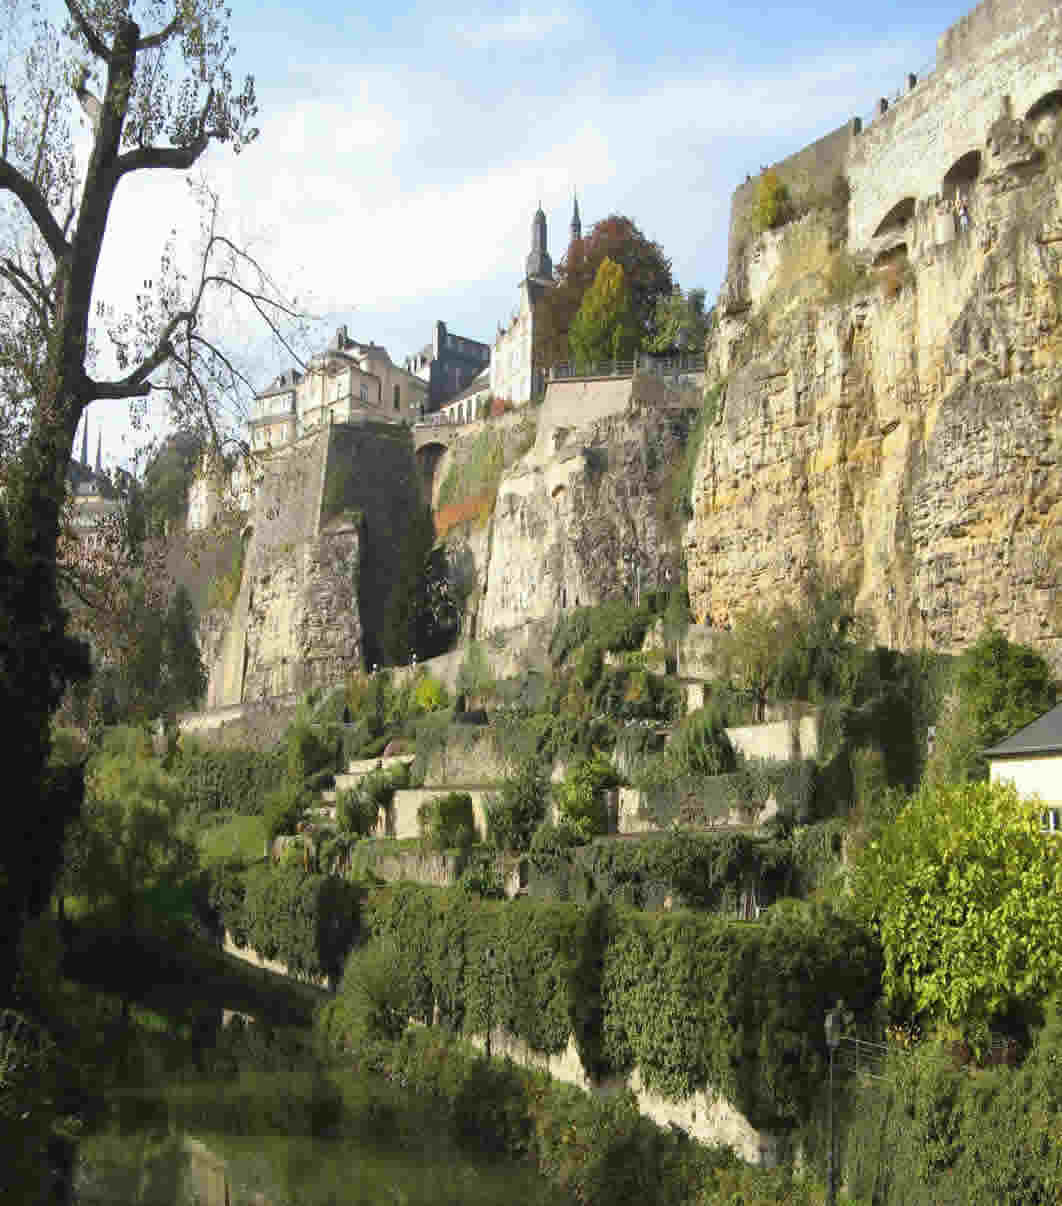 Bock Casemates Luxembourg City, Luxembourg this-other-world